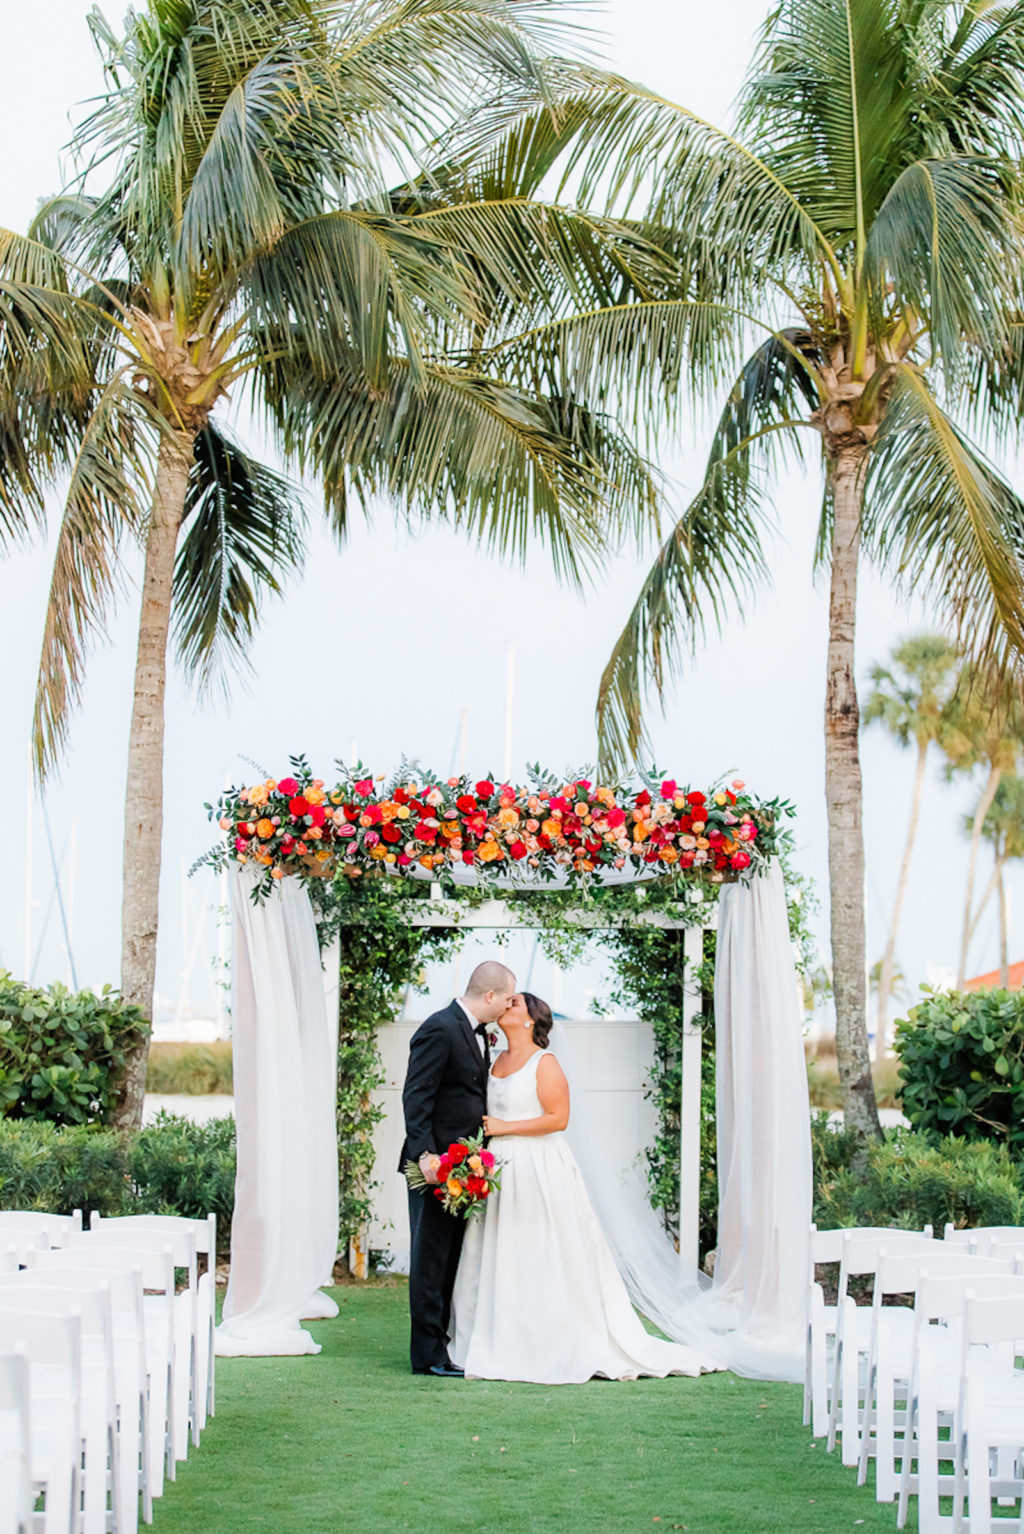 Florida Bride and Groom Kissing Under Wedding Ceremony Arch with White Linens with Colorful Jewel Tone Pink, Orange, Red Flowers and Greenery | Tampa Outdoor Waterfront Garden Wedding Venue The Resort at Longboat Key Club